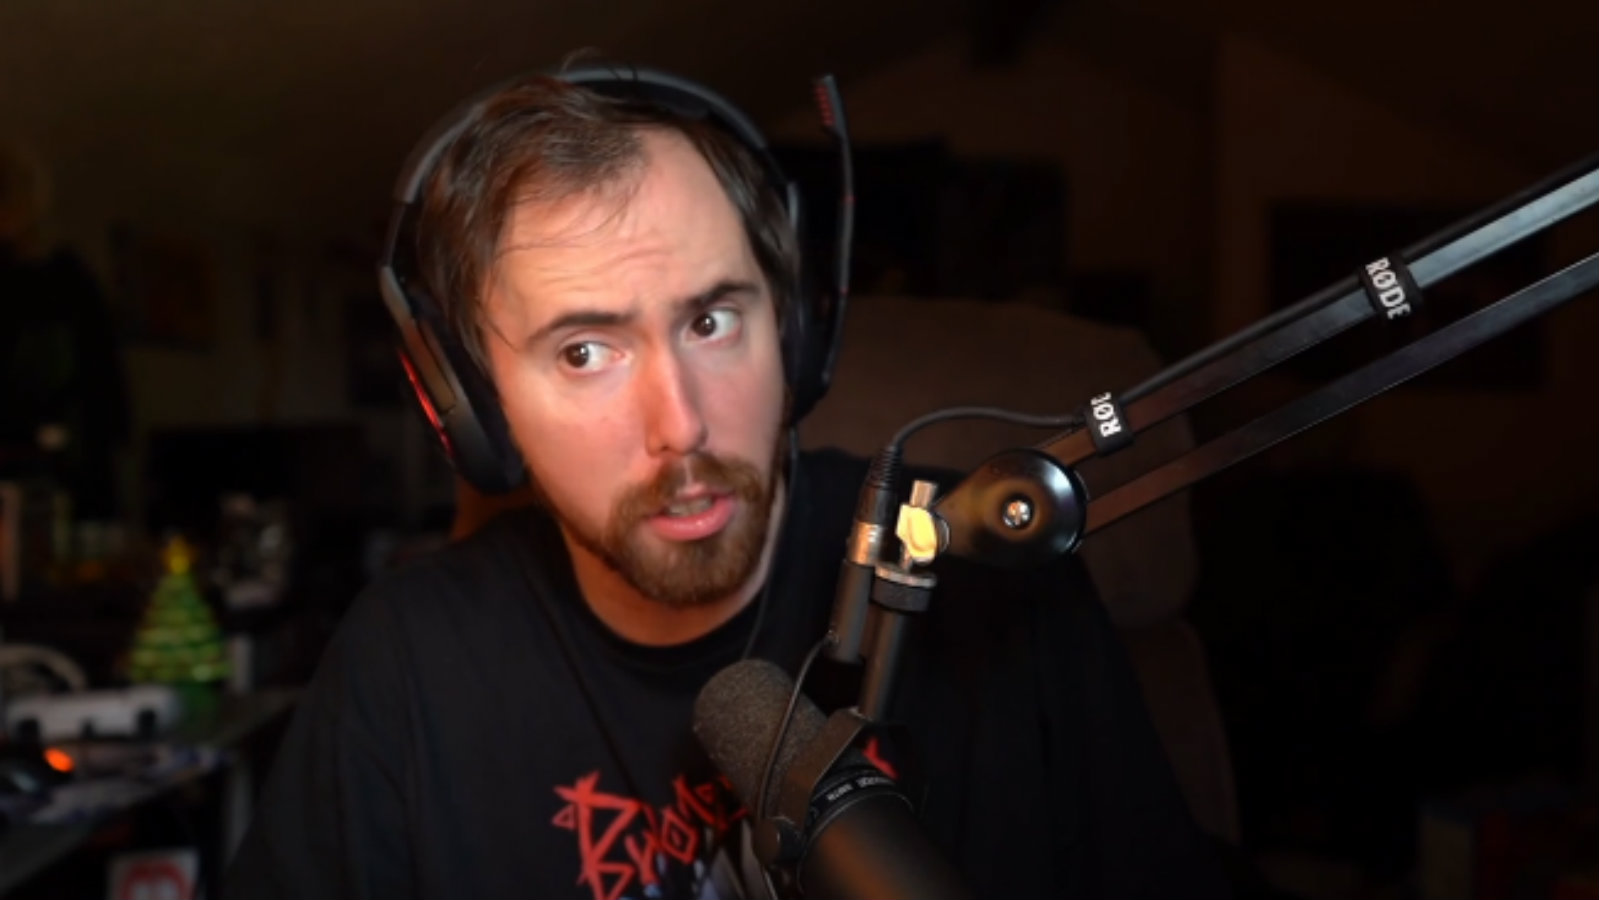 Asmongold defends Forsen after Twitch ban